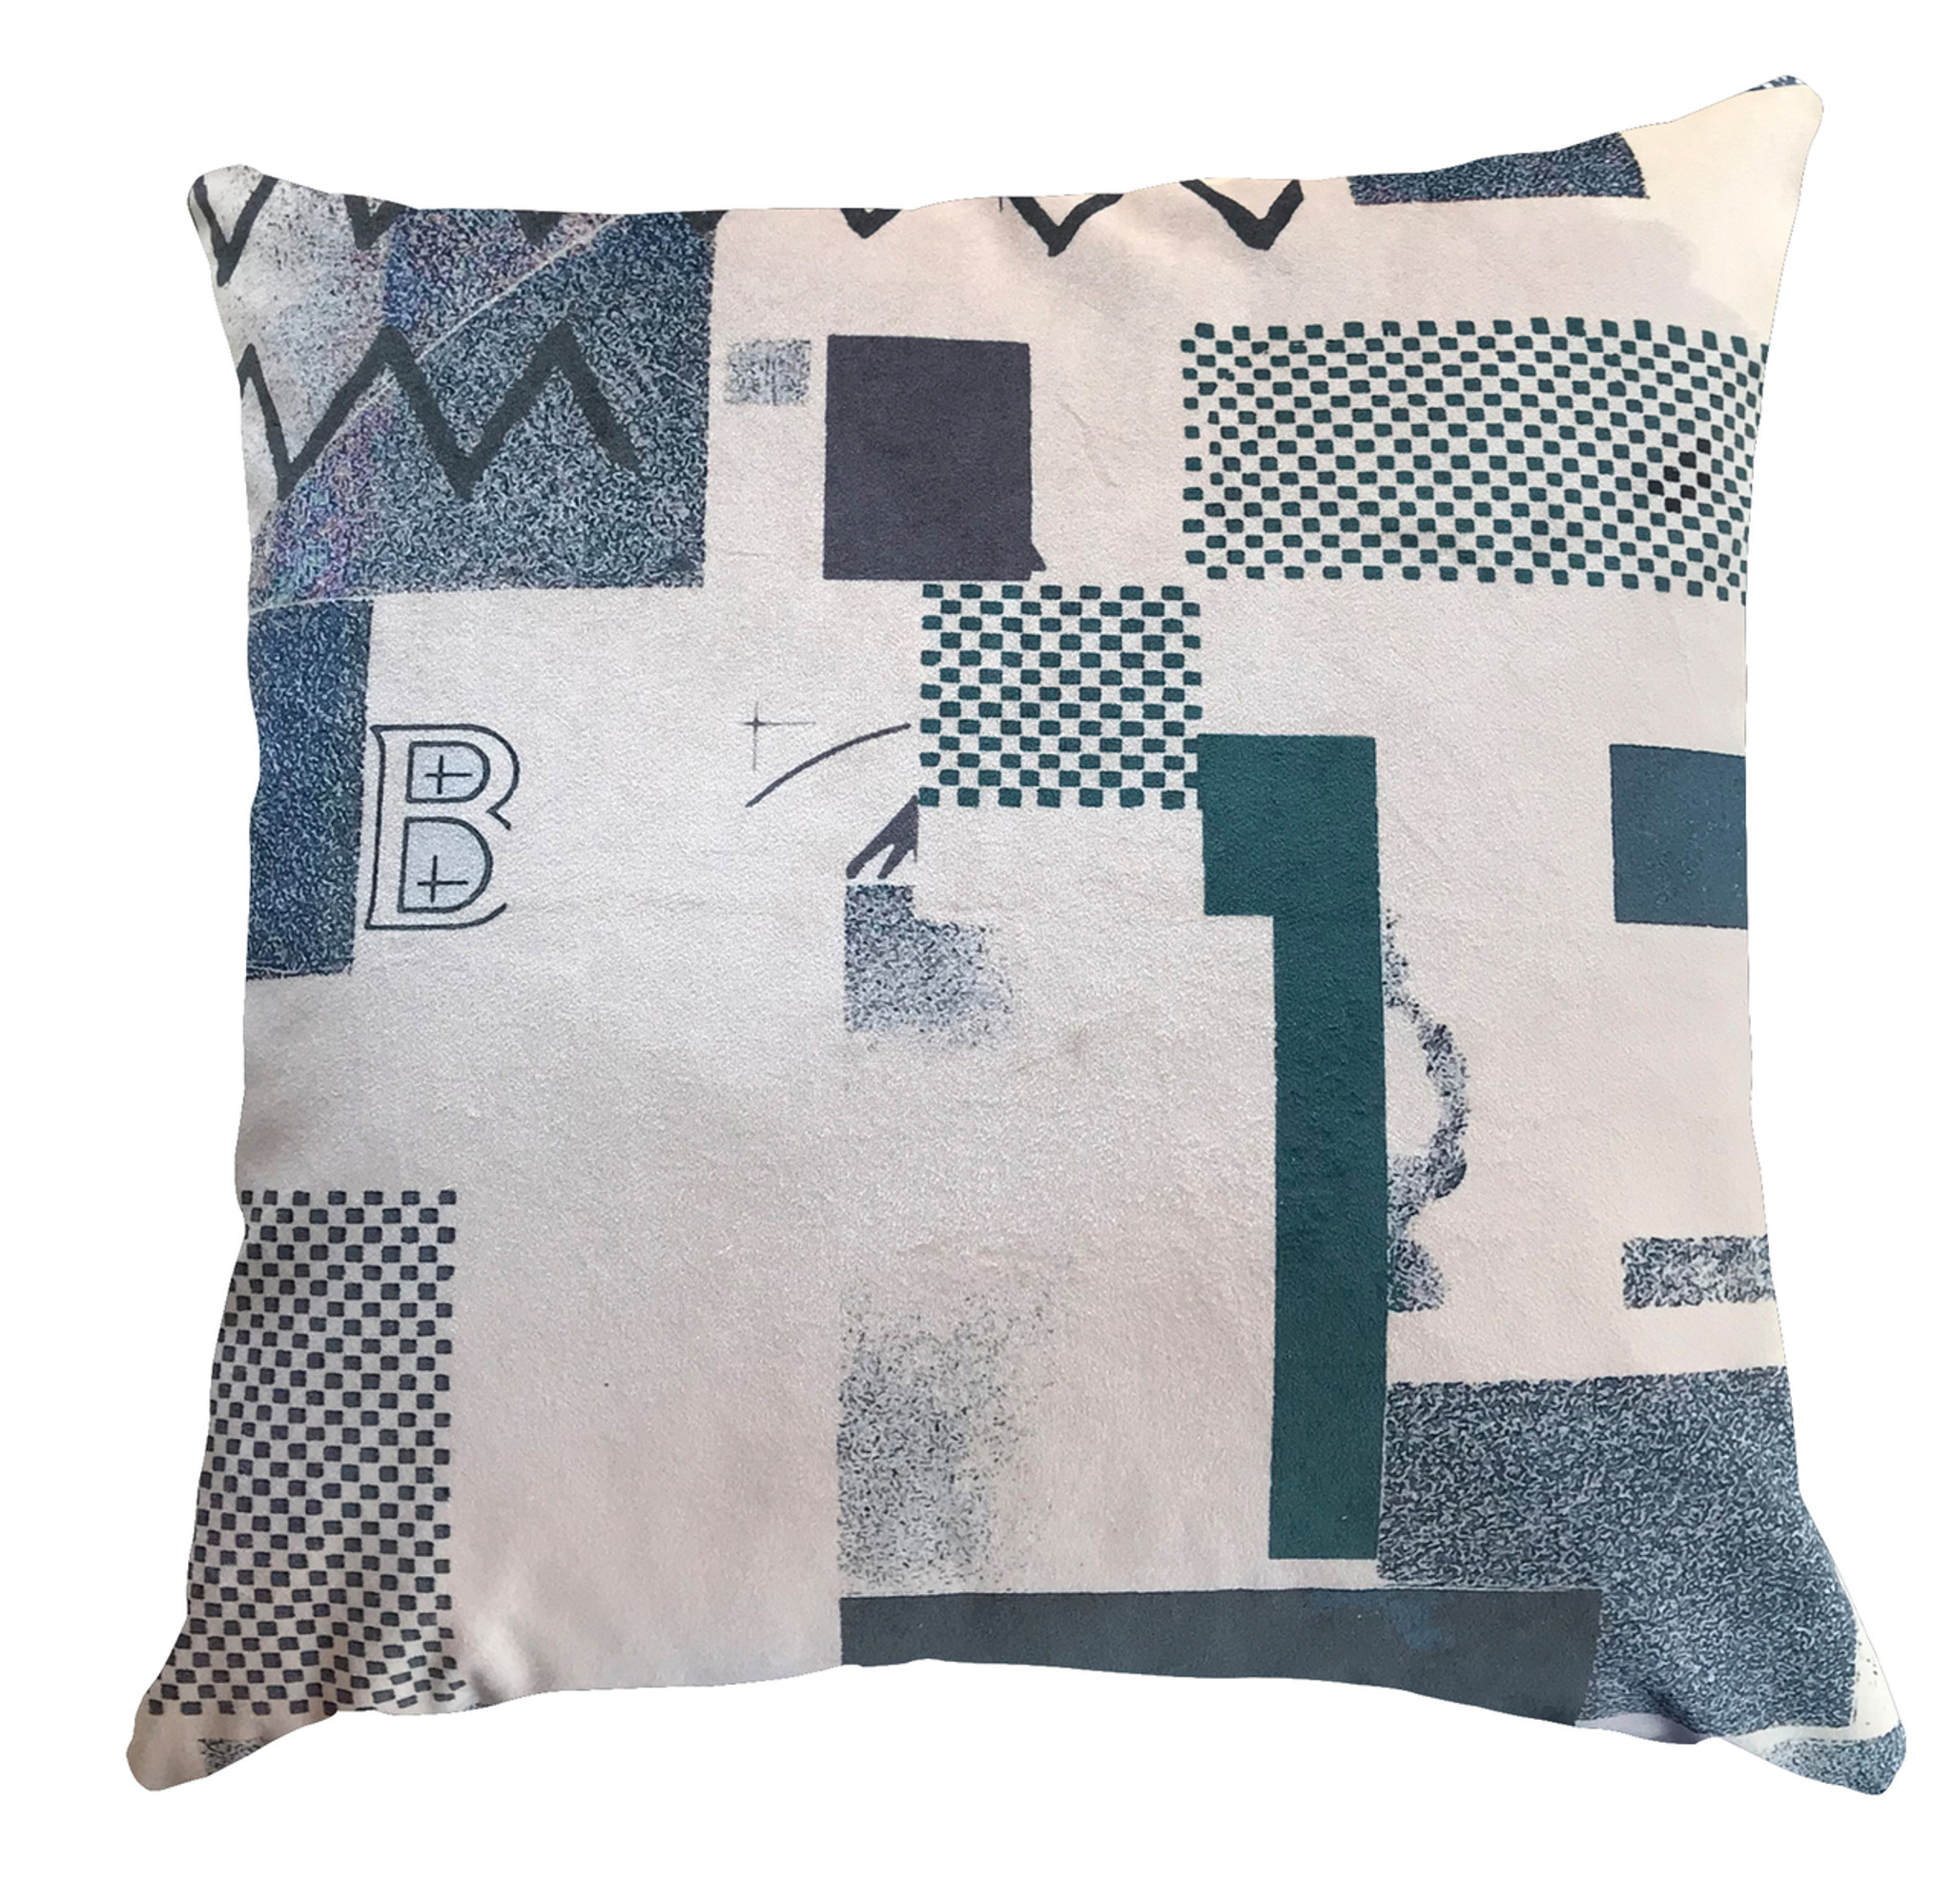 Cushion - Modigliani Was Here - Abstract in Blue B1